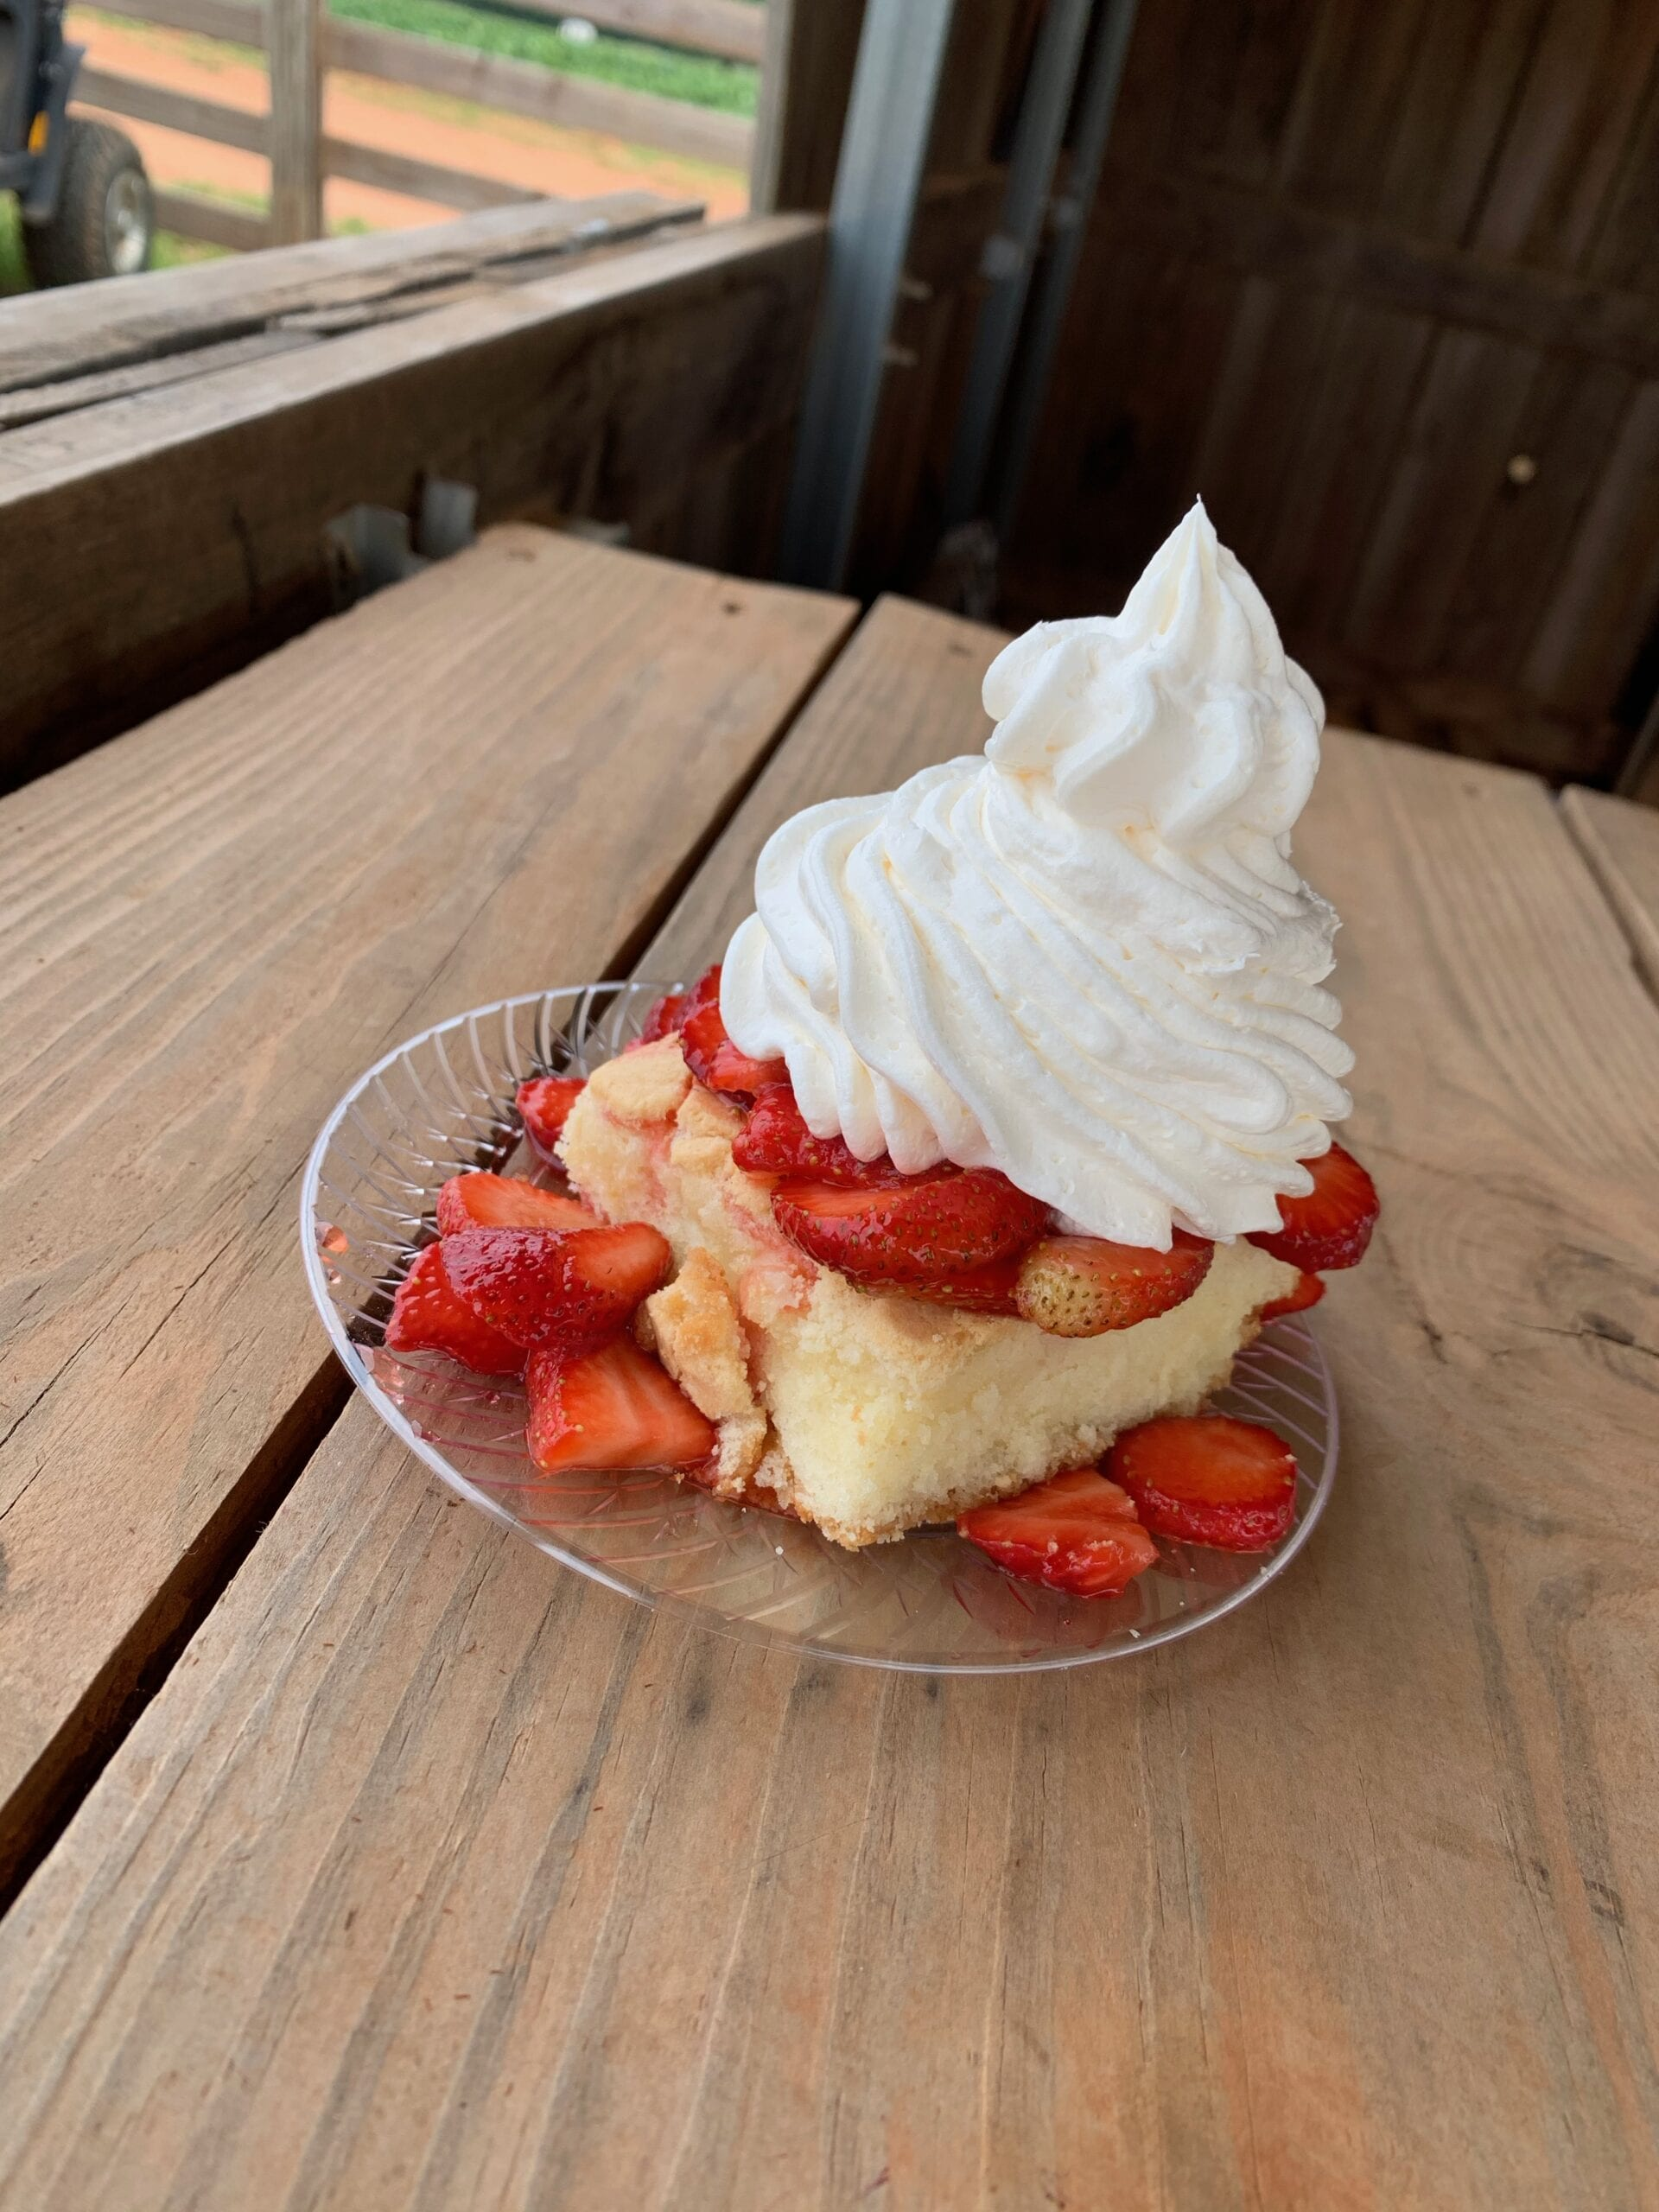 strawberry shortcake and whipped cream on a plate